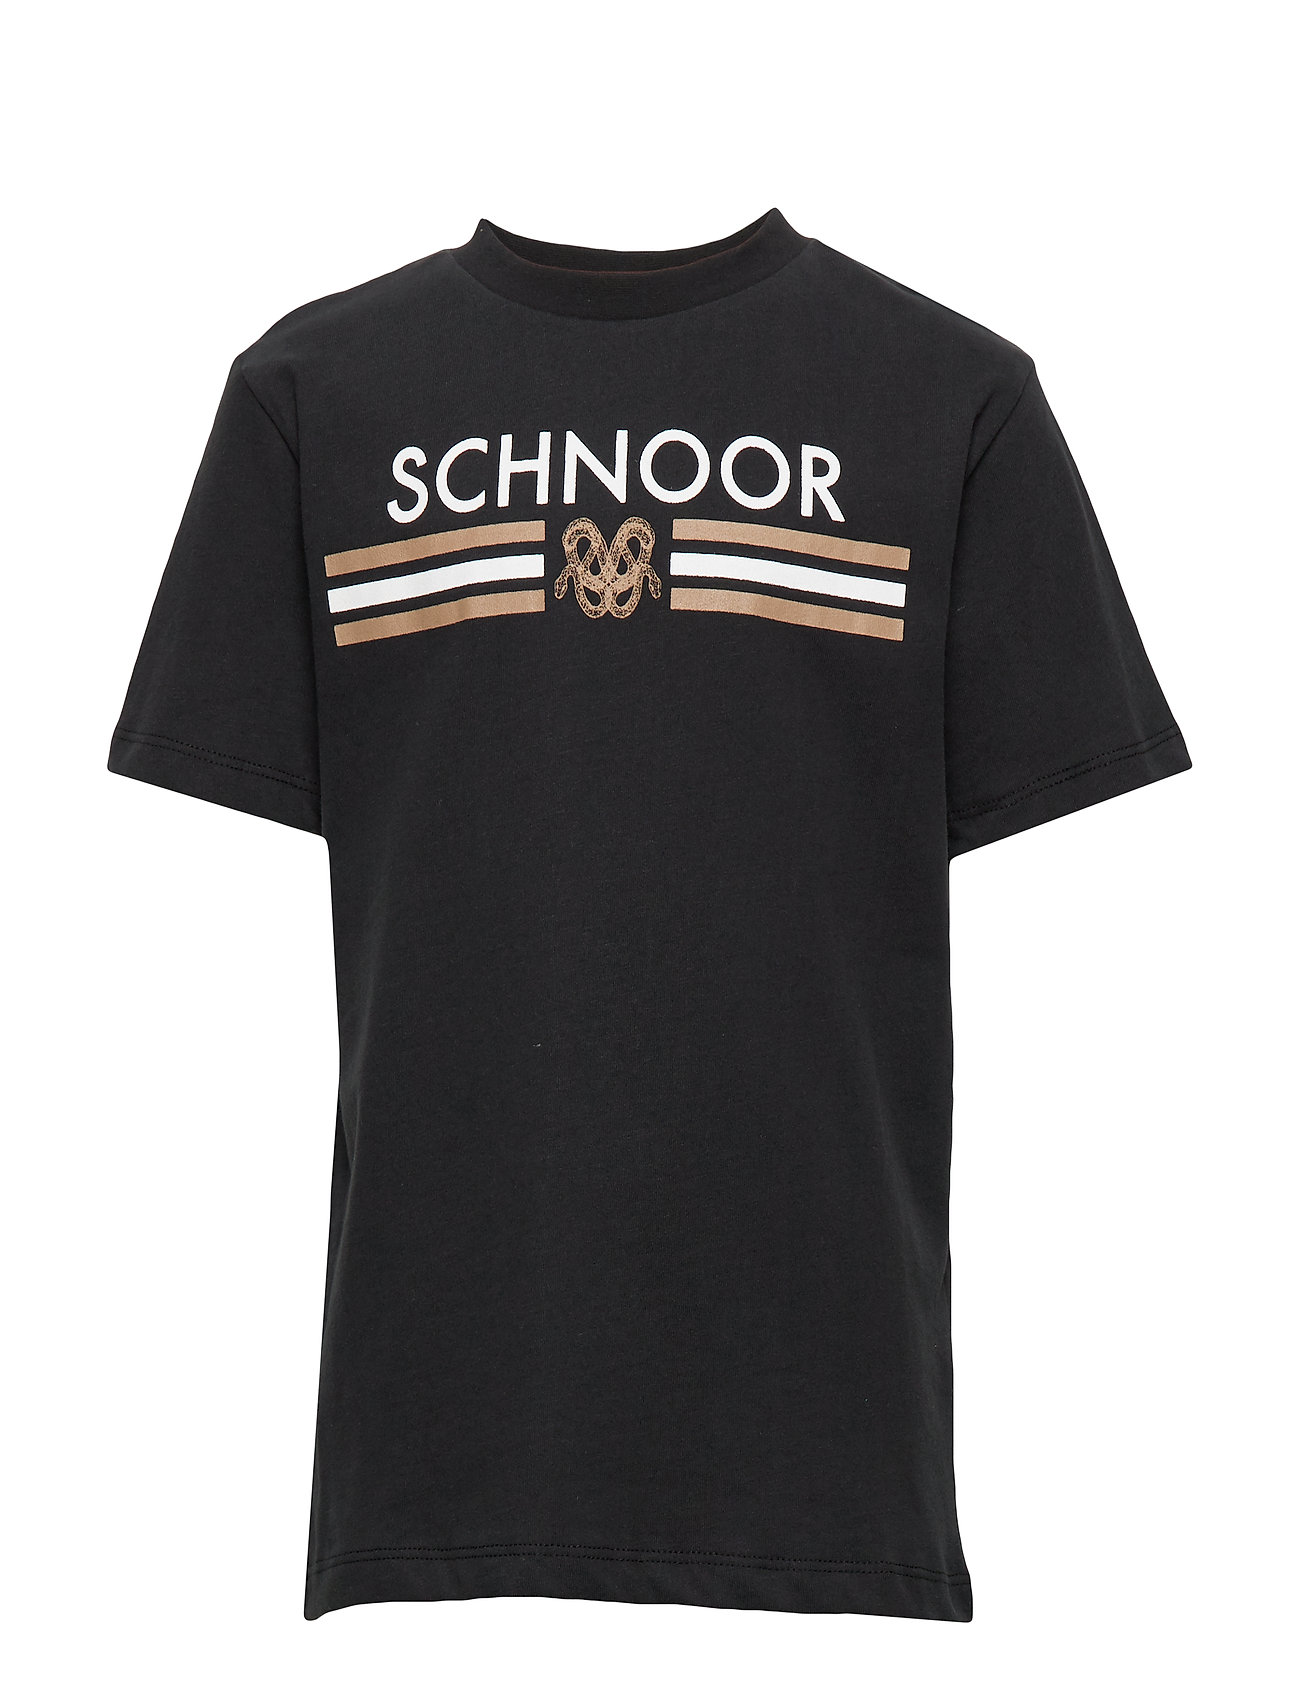 Petit by Sofie Schnoor T-shirt - BLACK